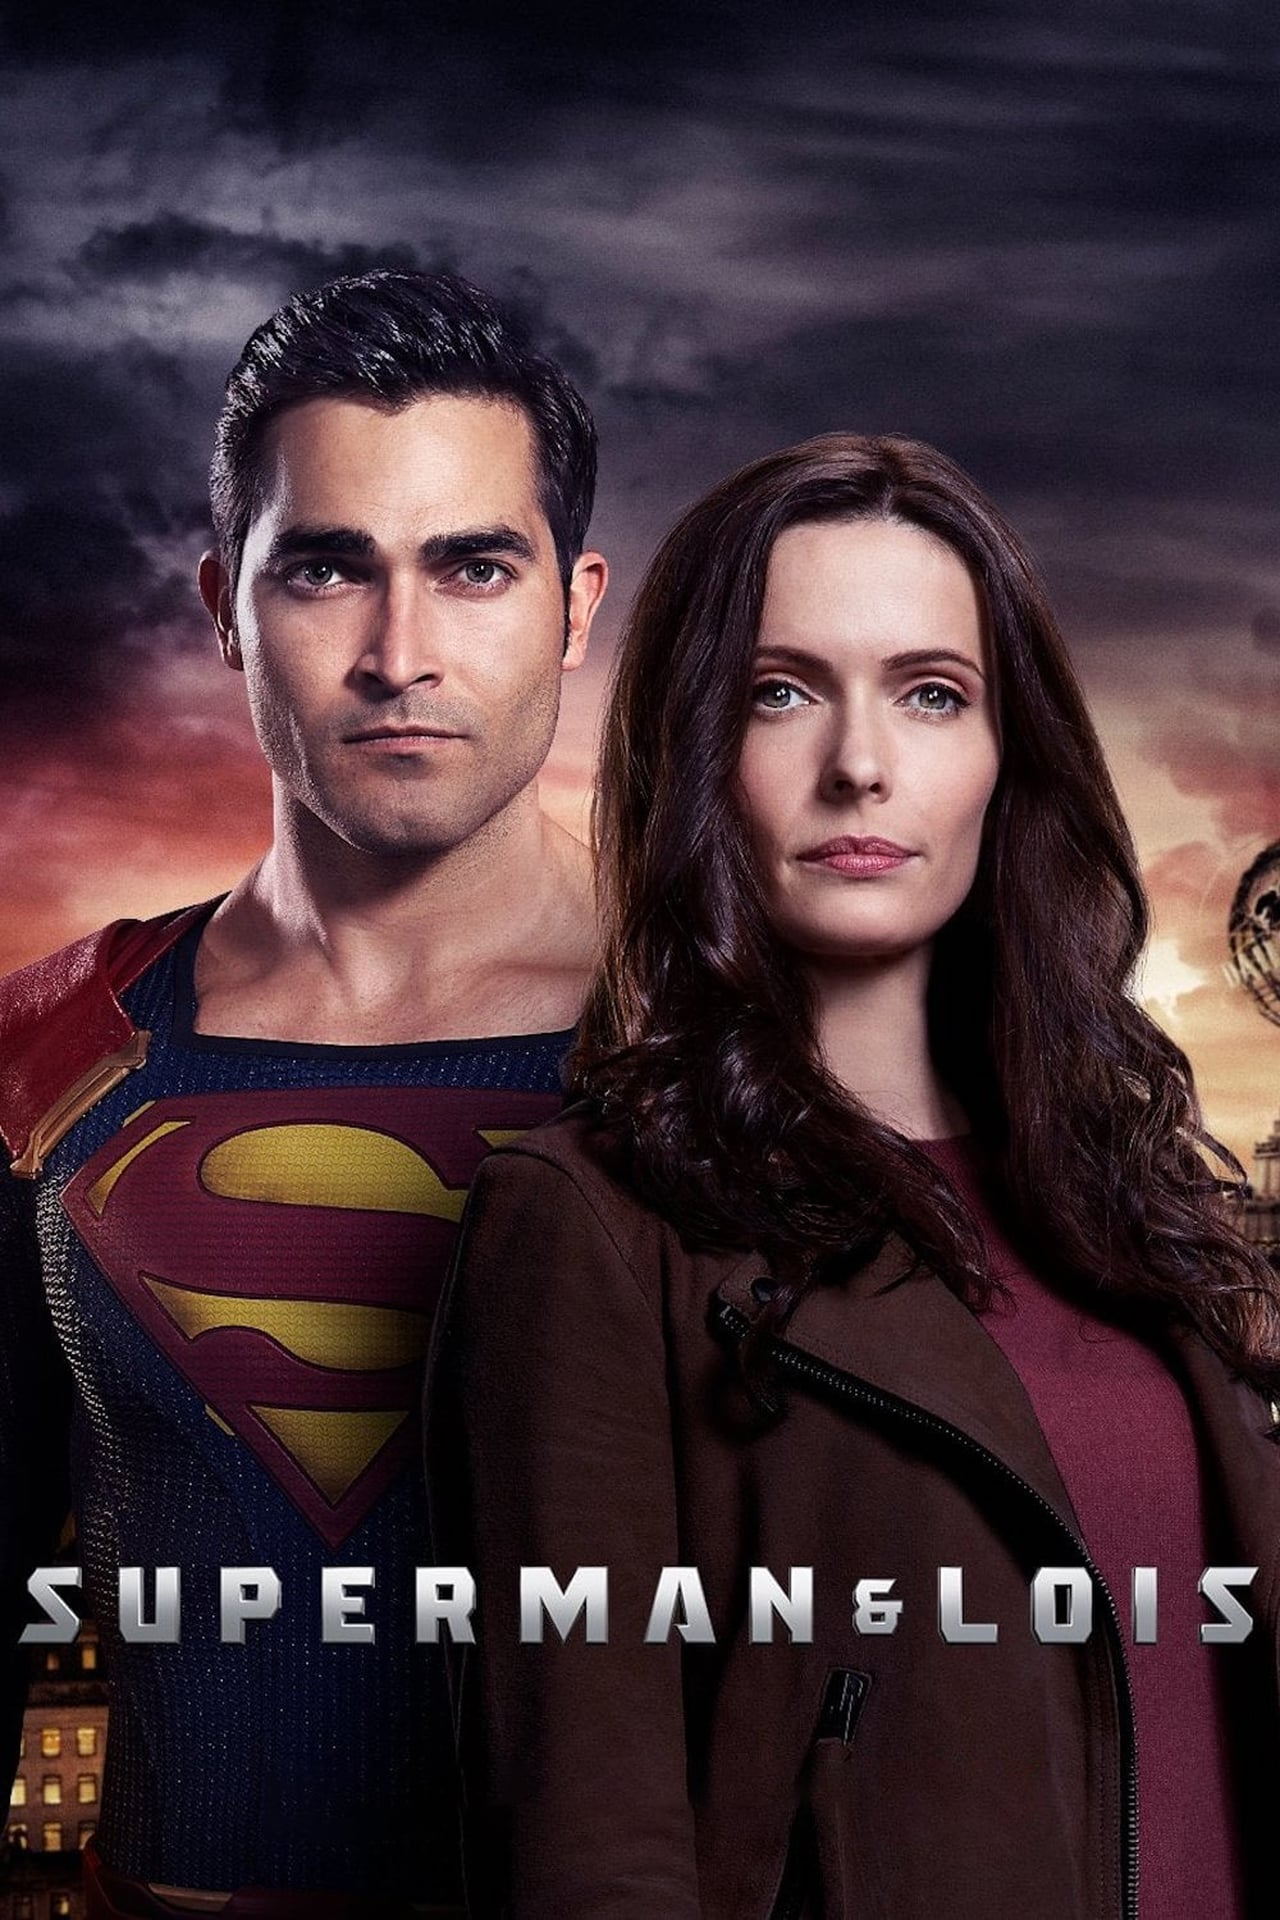 Superman and Lois (season 1)